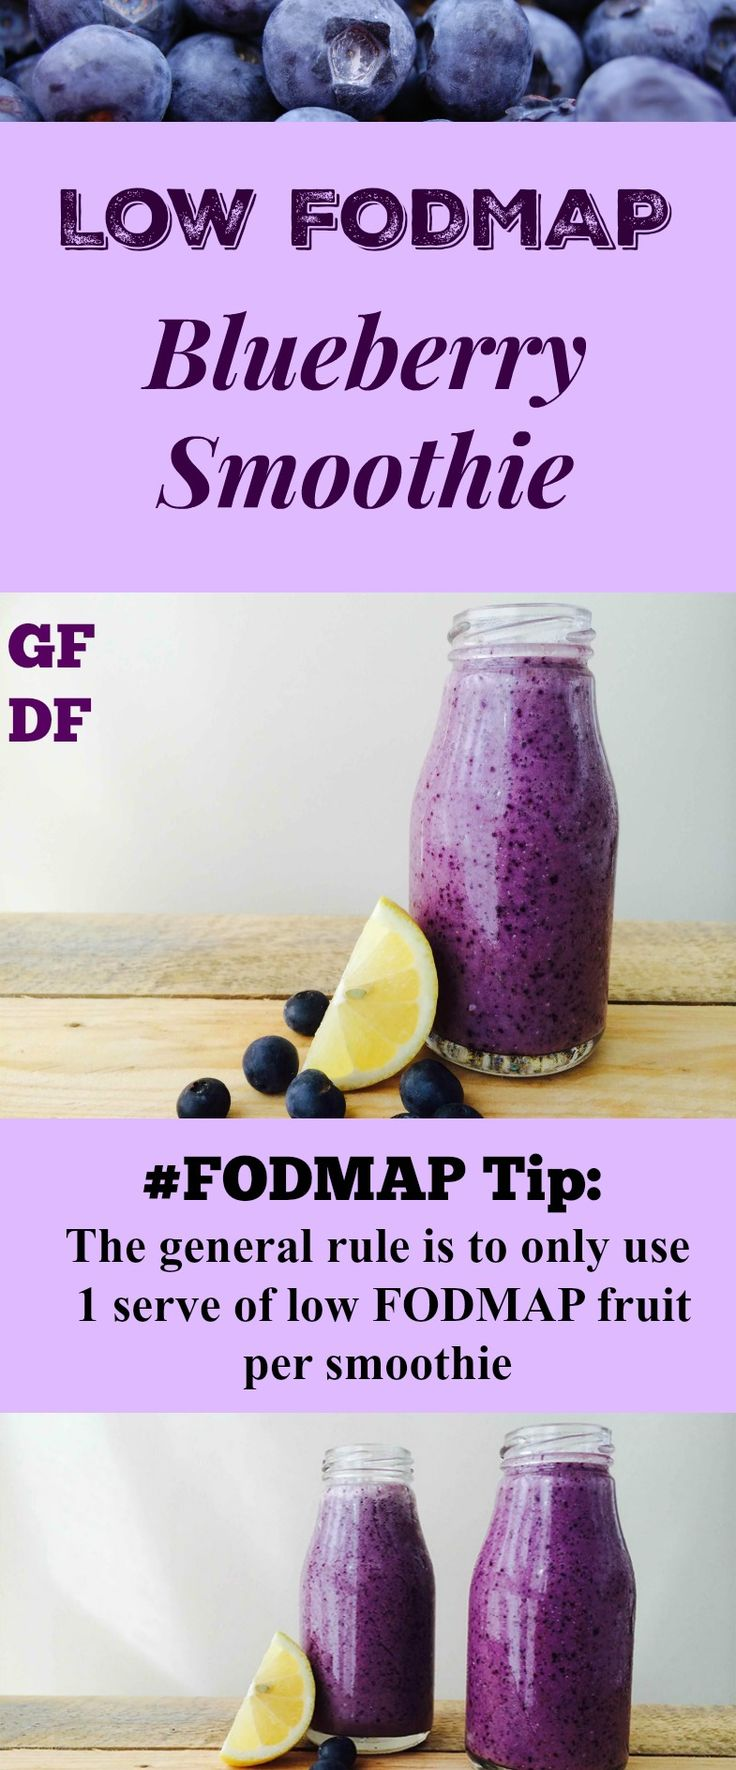 I love smoothies! This low FODMAP smoothie is refreshing and makes a great breakfast or snack on the go.